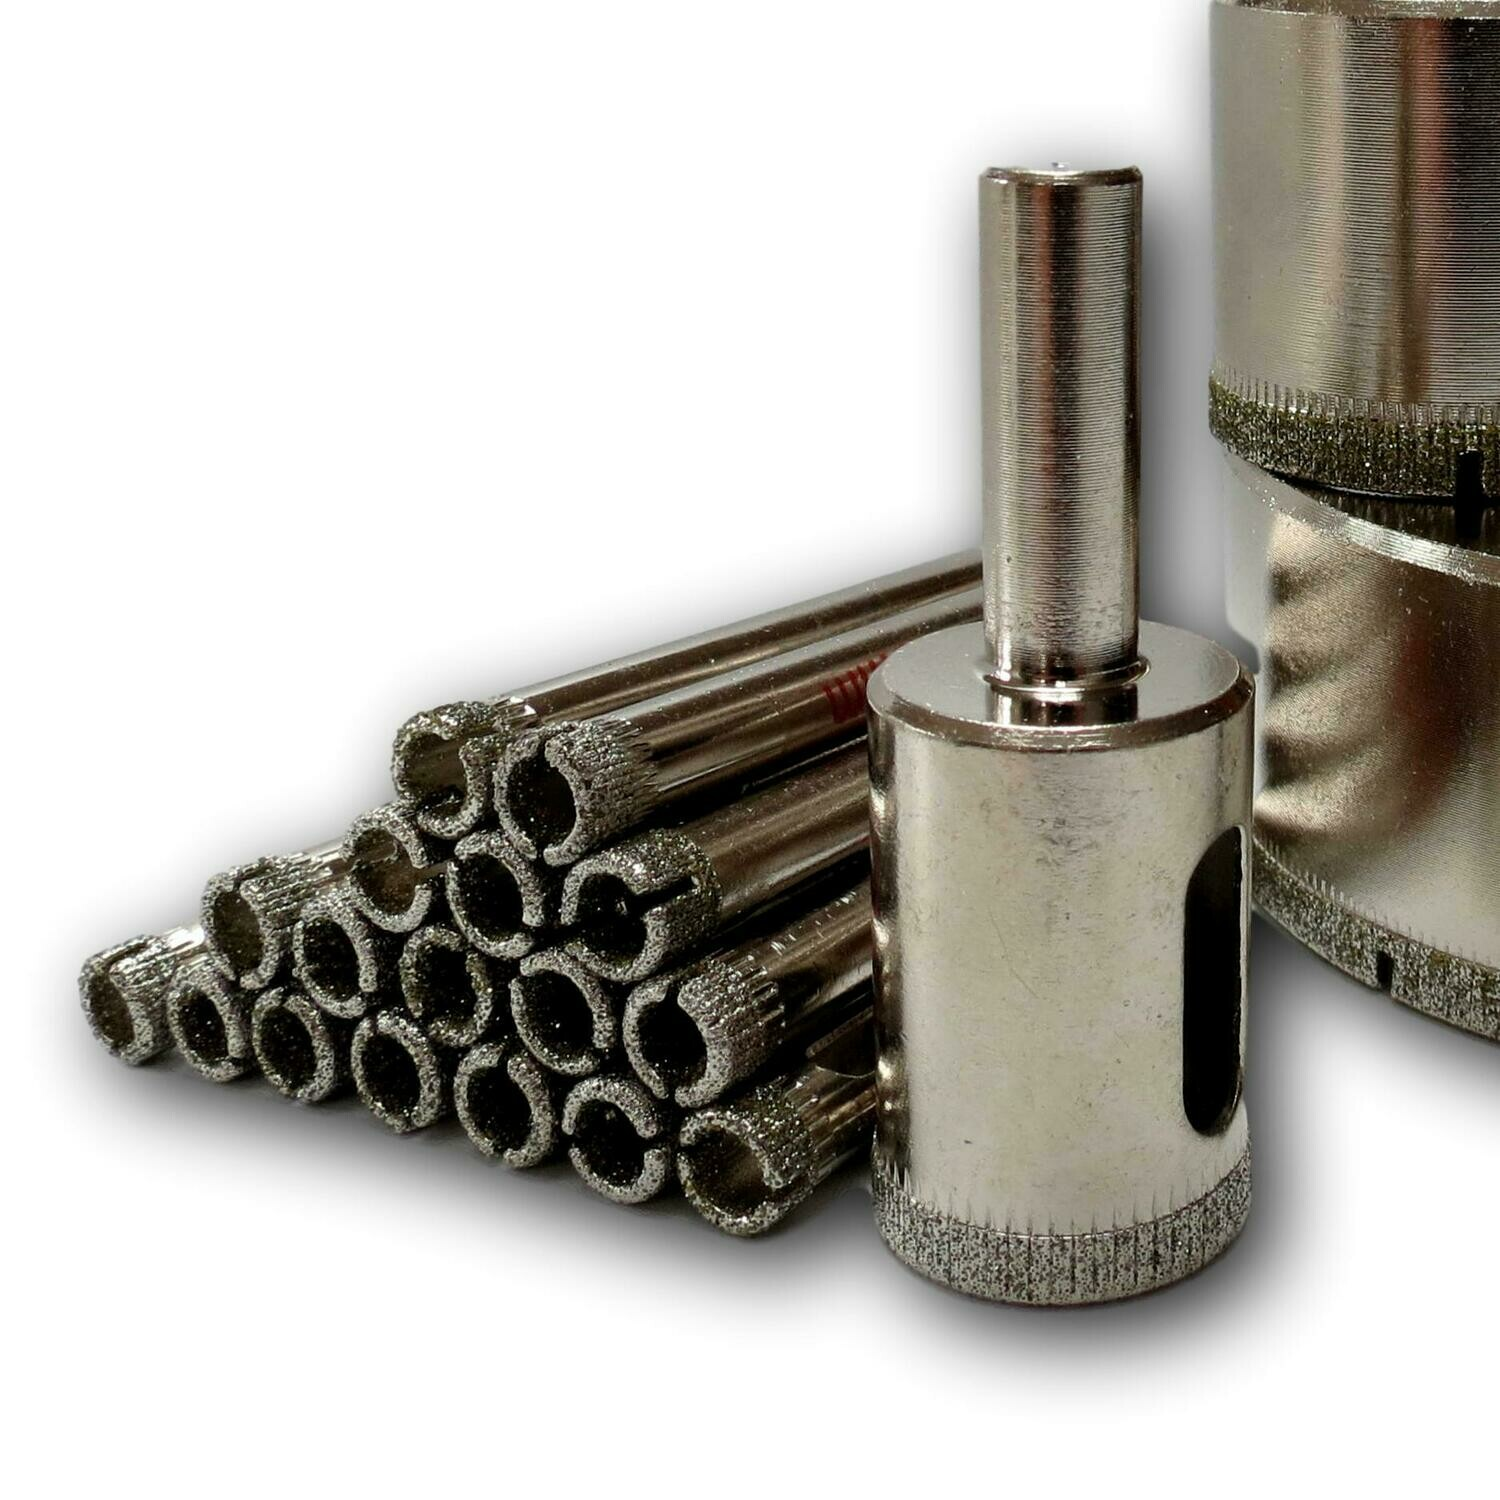 3 to 25mm Diamond Drill Bits